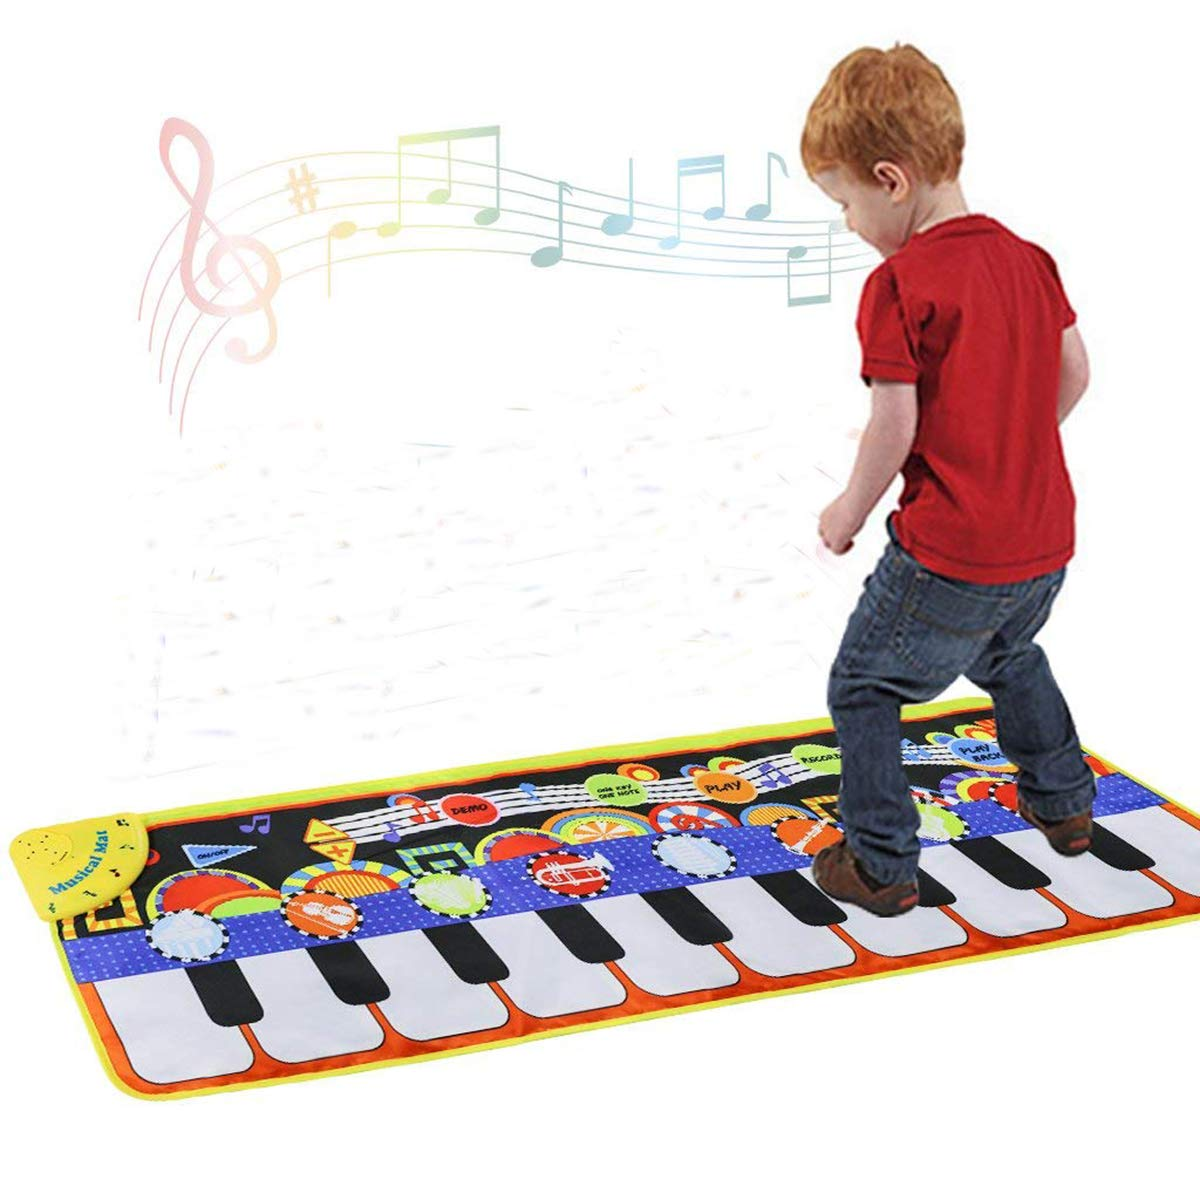 Cyiecw Piano Music Mat, Keyboard Play Mat Music Dance Mat with 19 Keys Piano Mat, 8 Selectable Musical Instruments Build-in Speaker & Recording Function for Kids Girls Boys, 43.3'' x14.2'' by Cyiecw